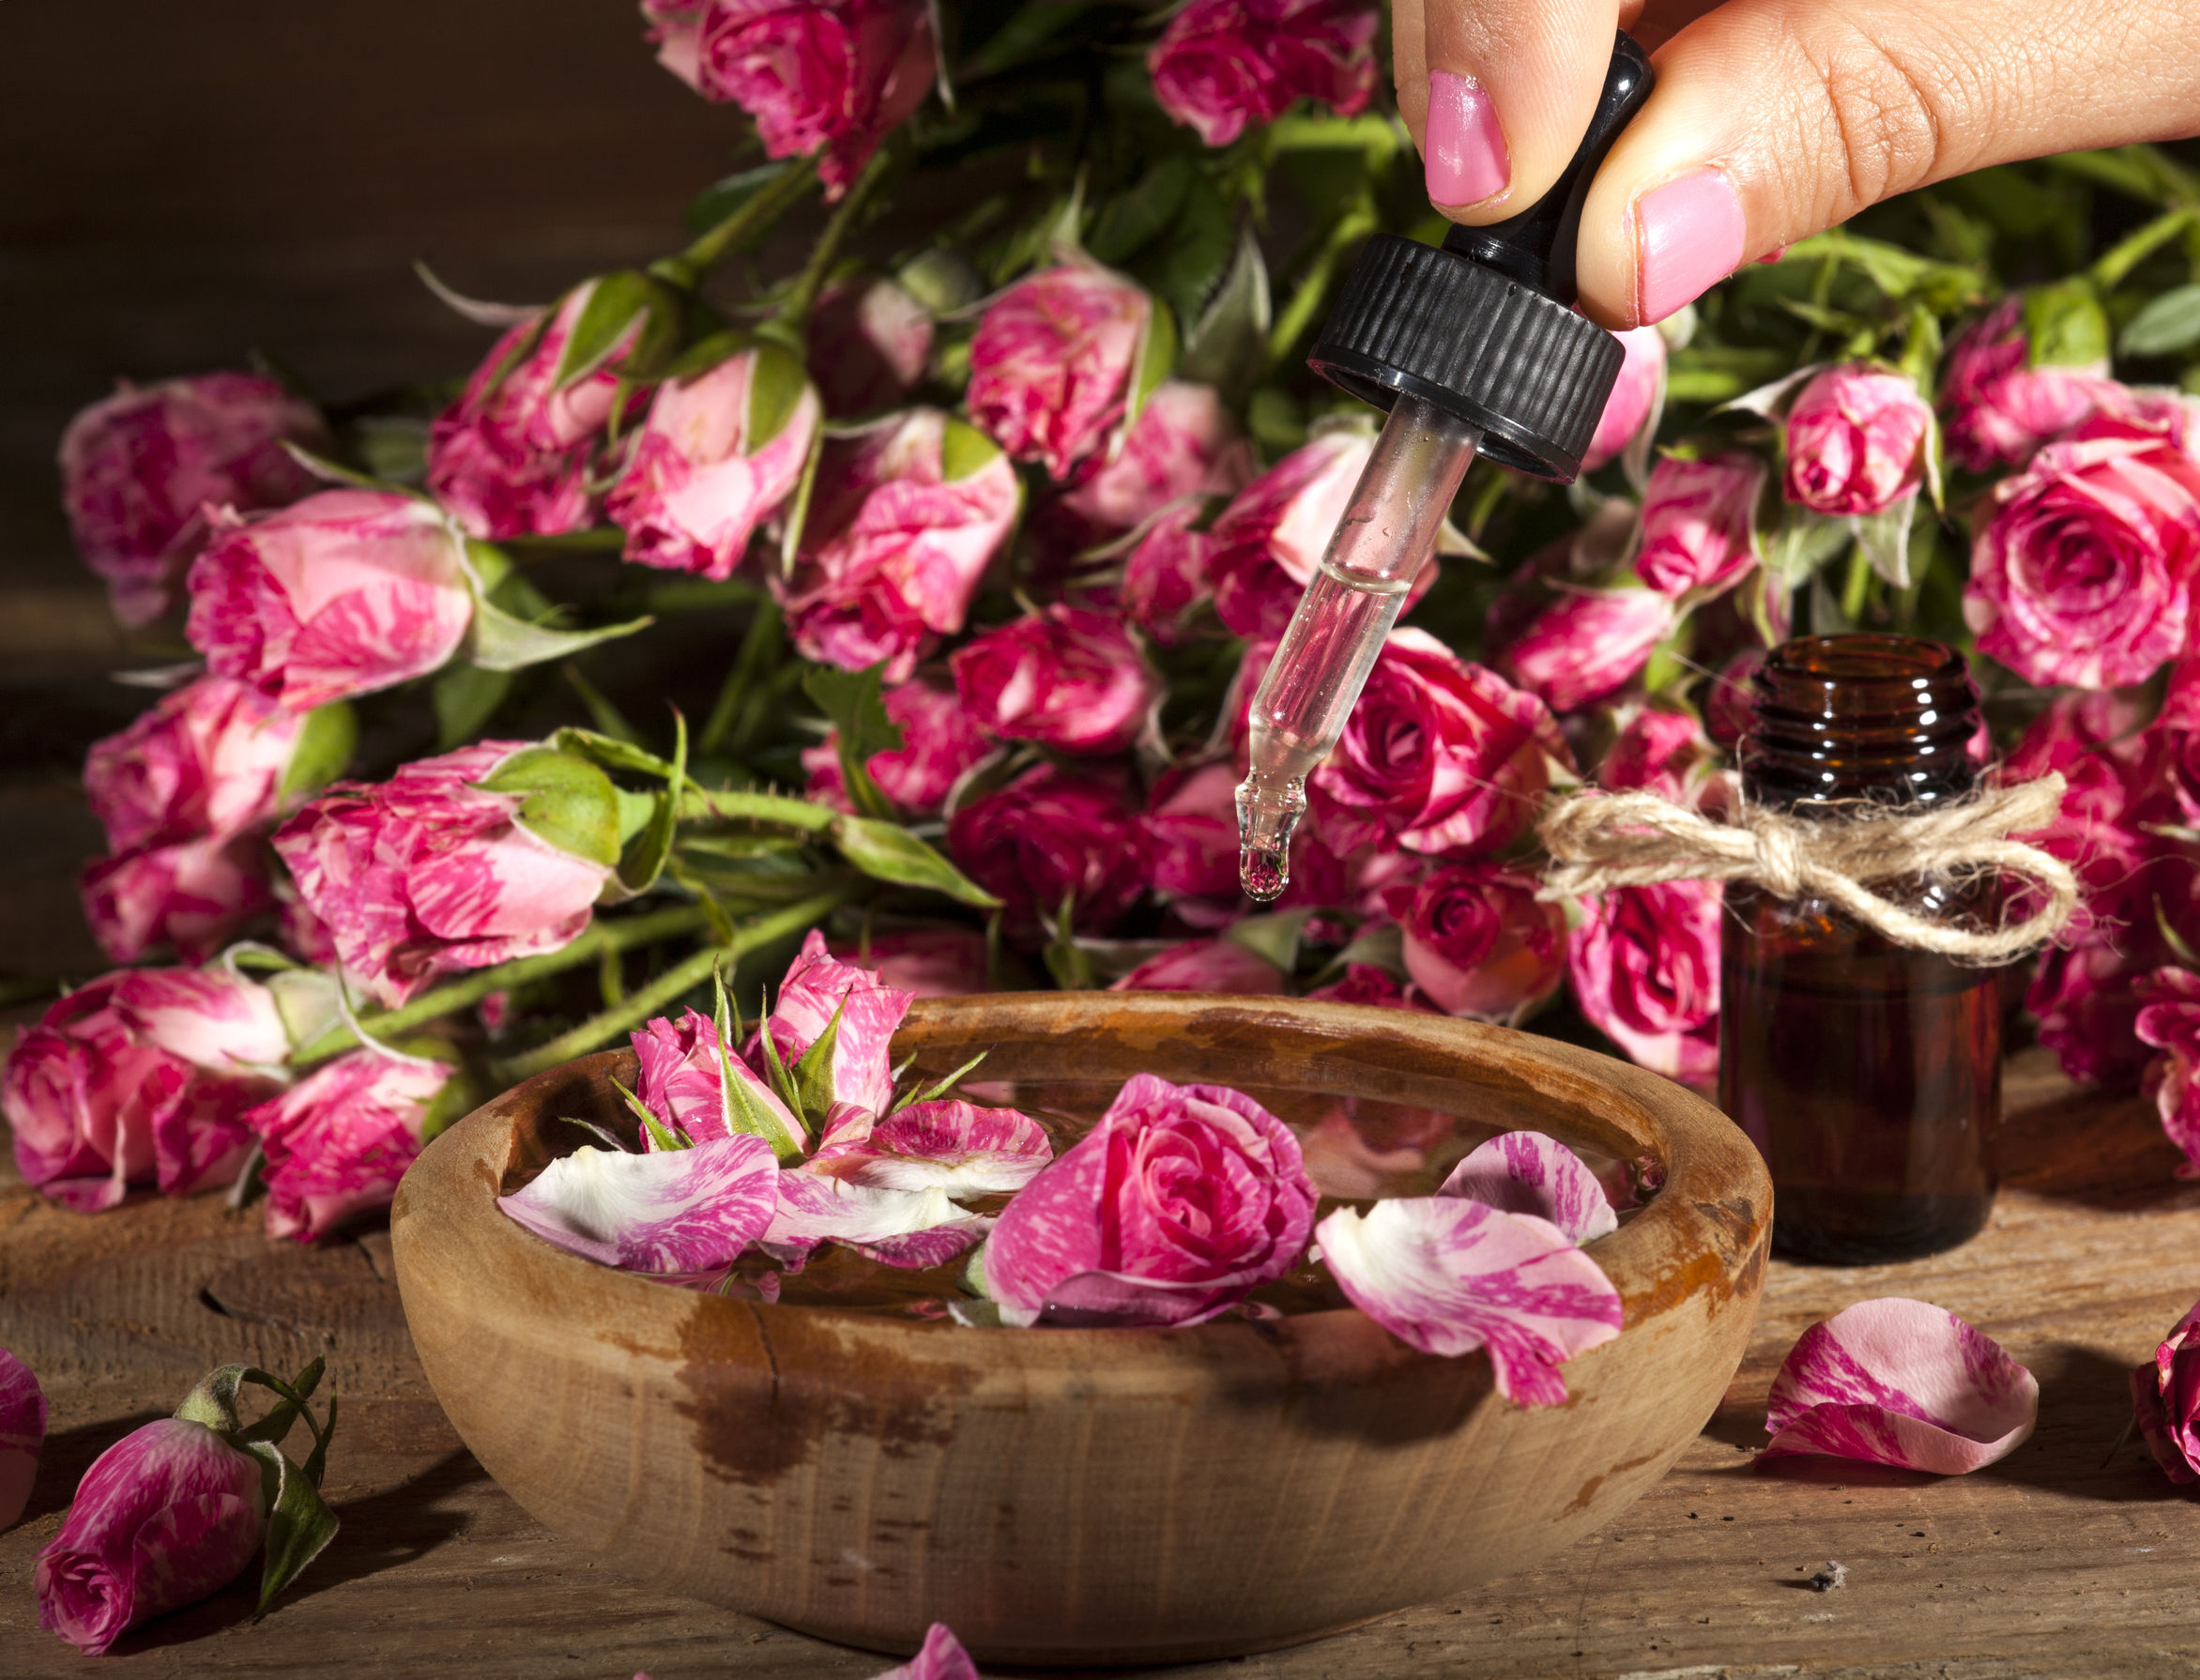 Best Rose Water 2020: Shopping Guide & Review